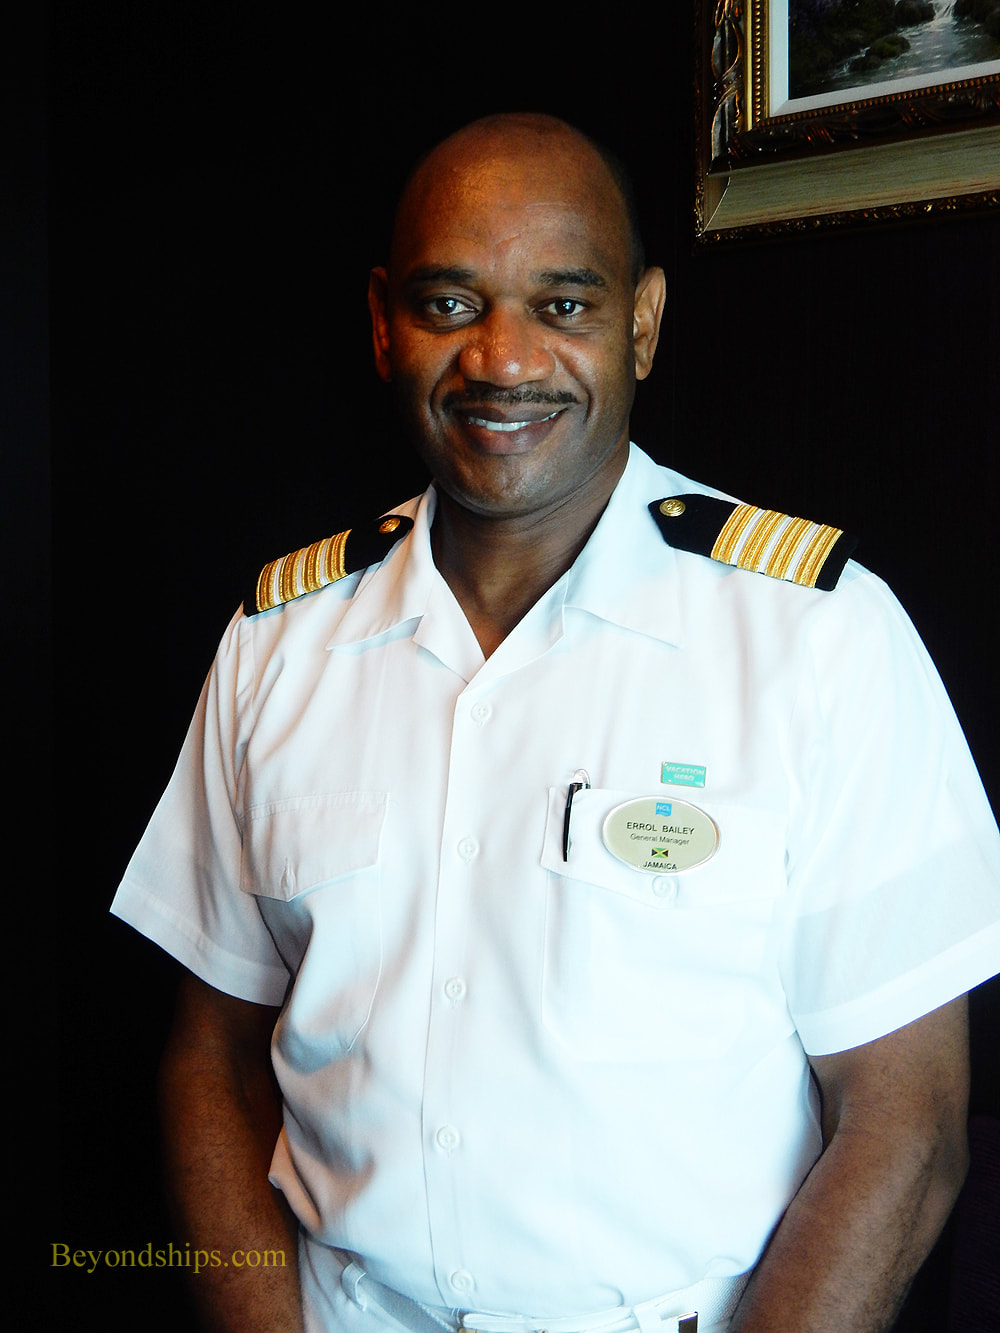 Hotel General Manager Errol Bailey of Norwegian Cruise Lines